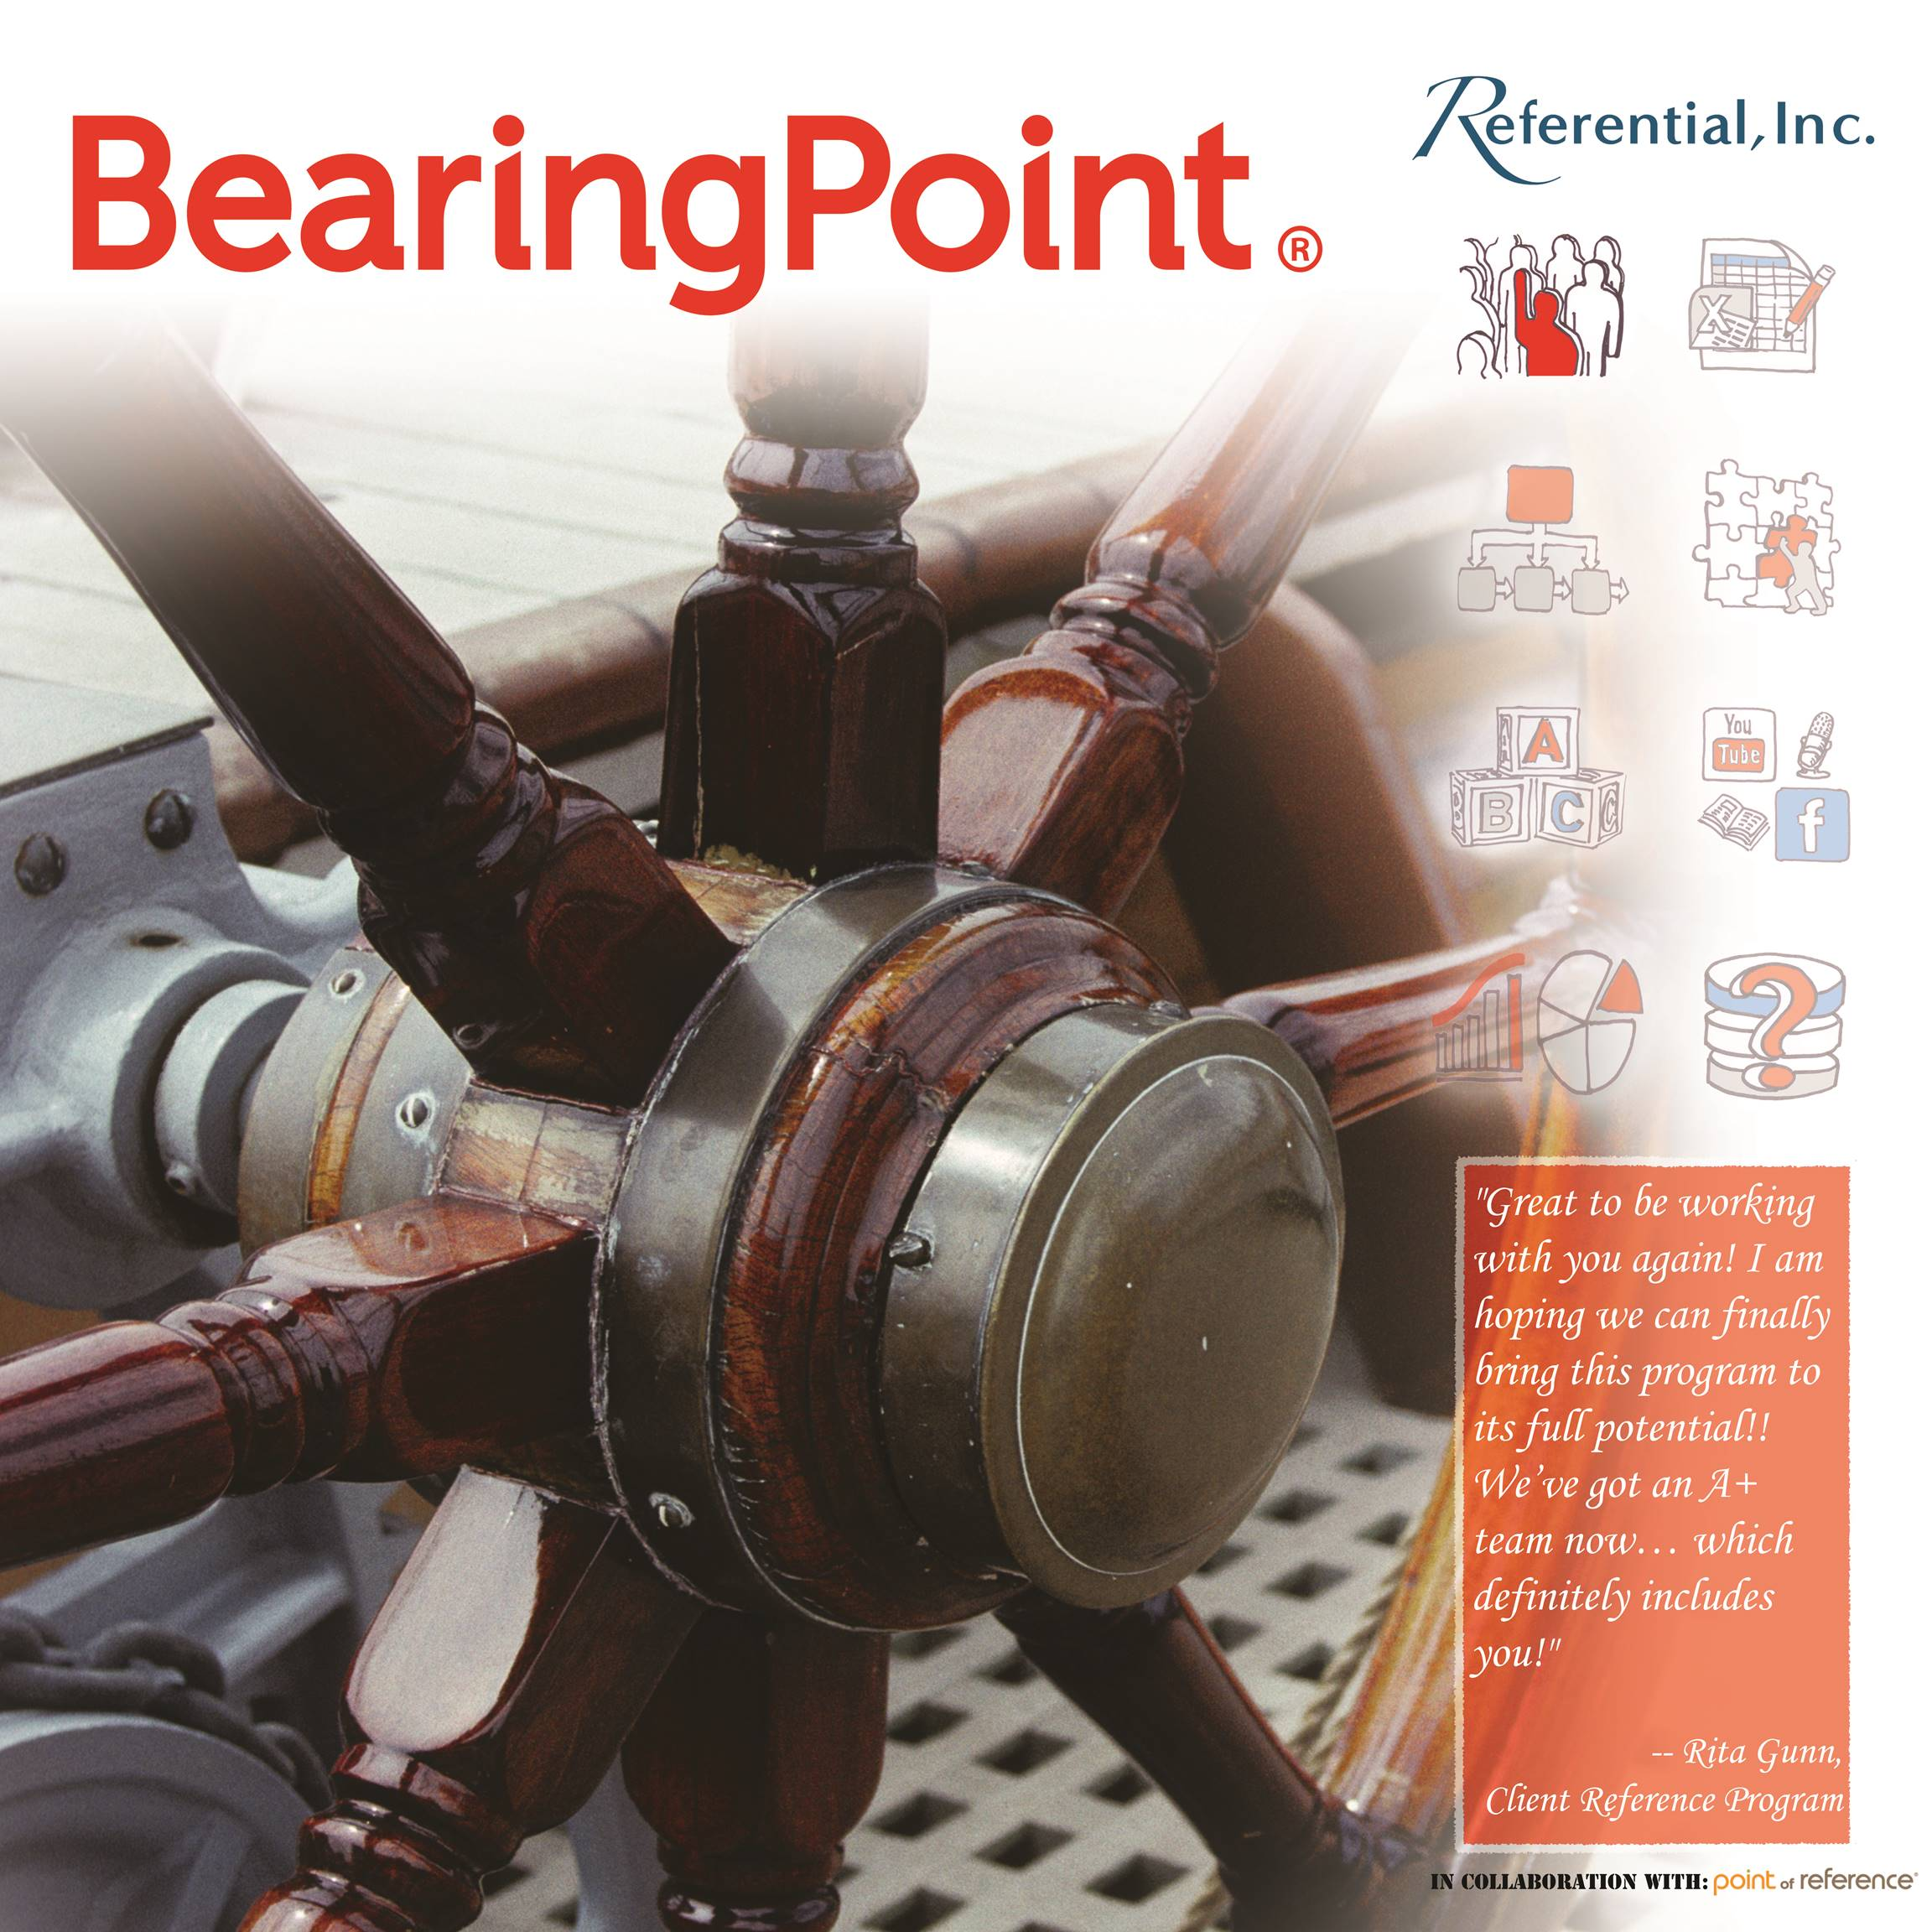 Bearing Point in PPT for printing.jpg